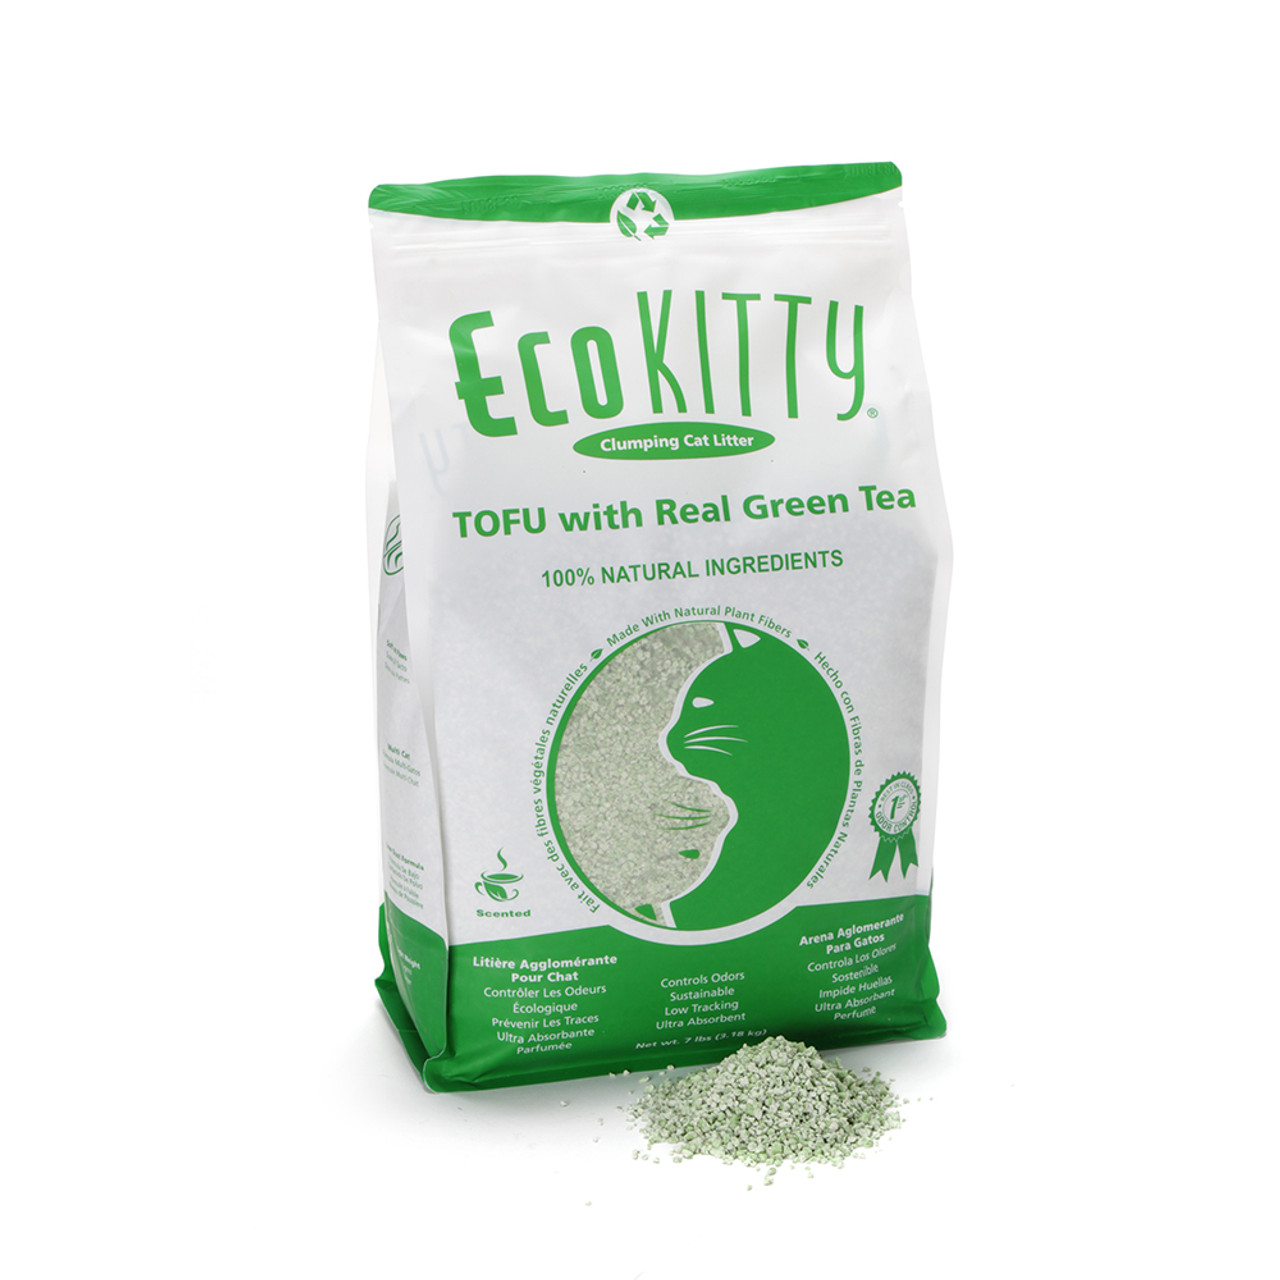 Eco Kitty Tofu with Real Green Tea Clumping Cat Litter